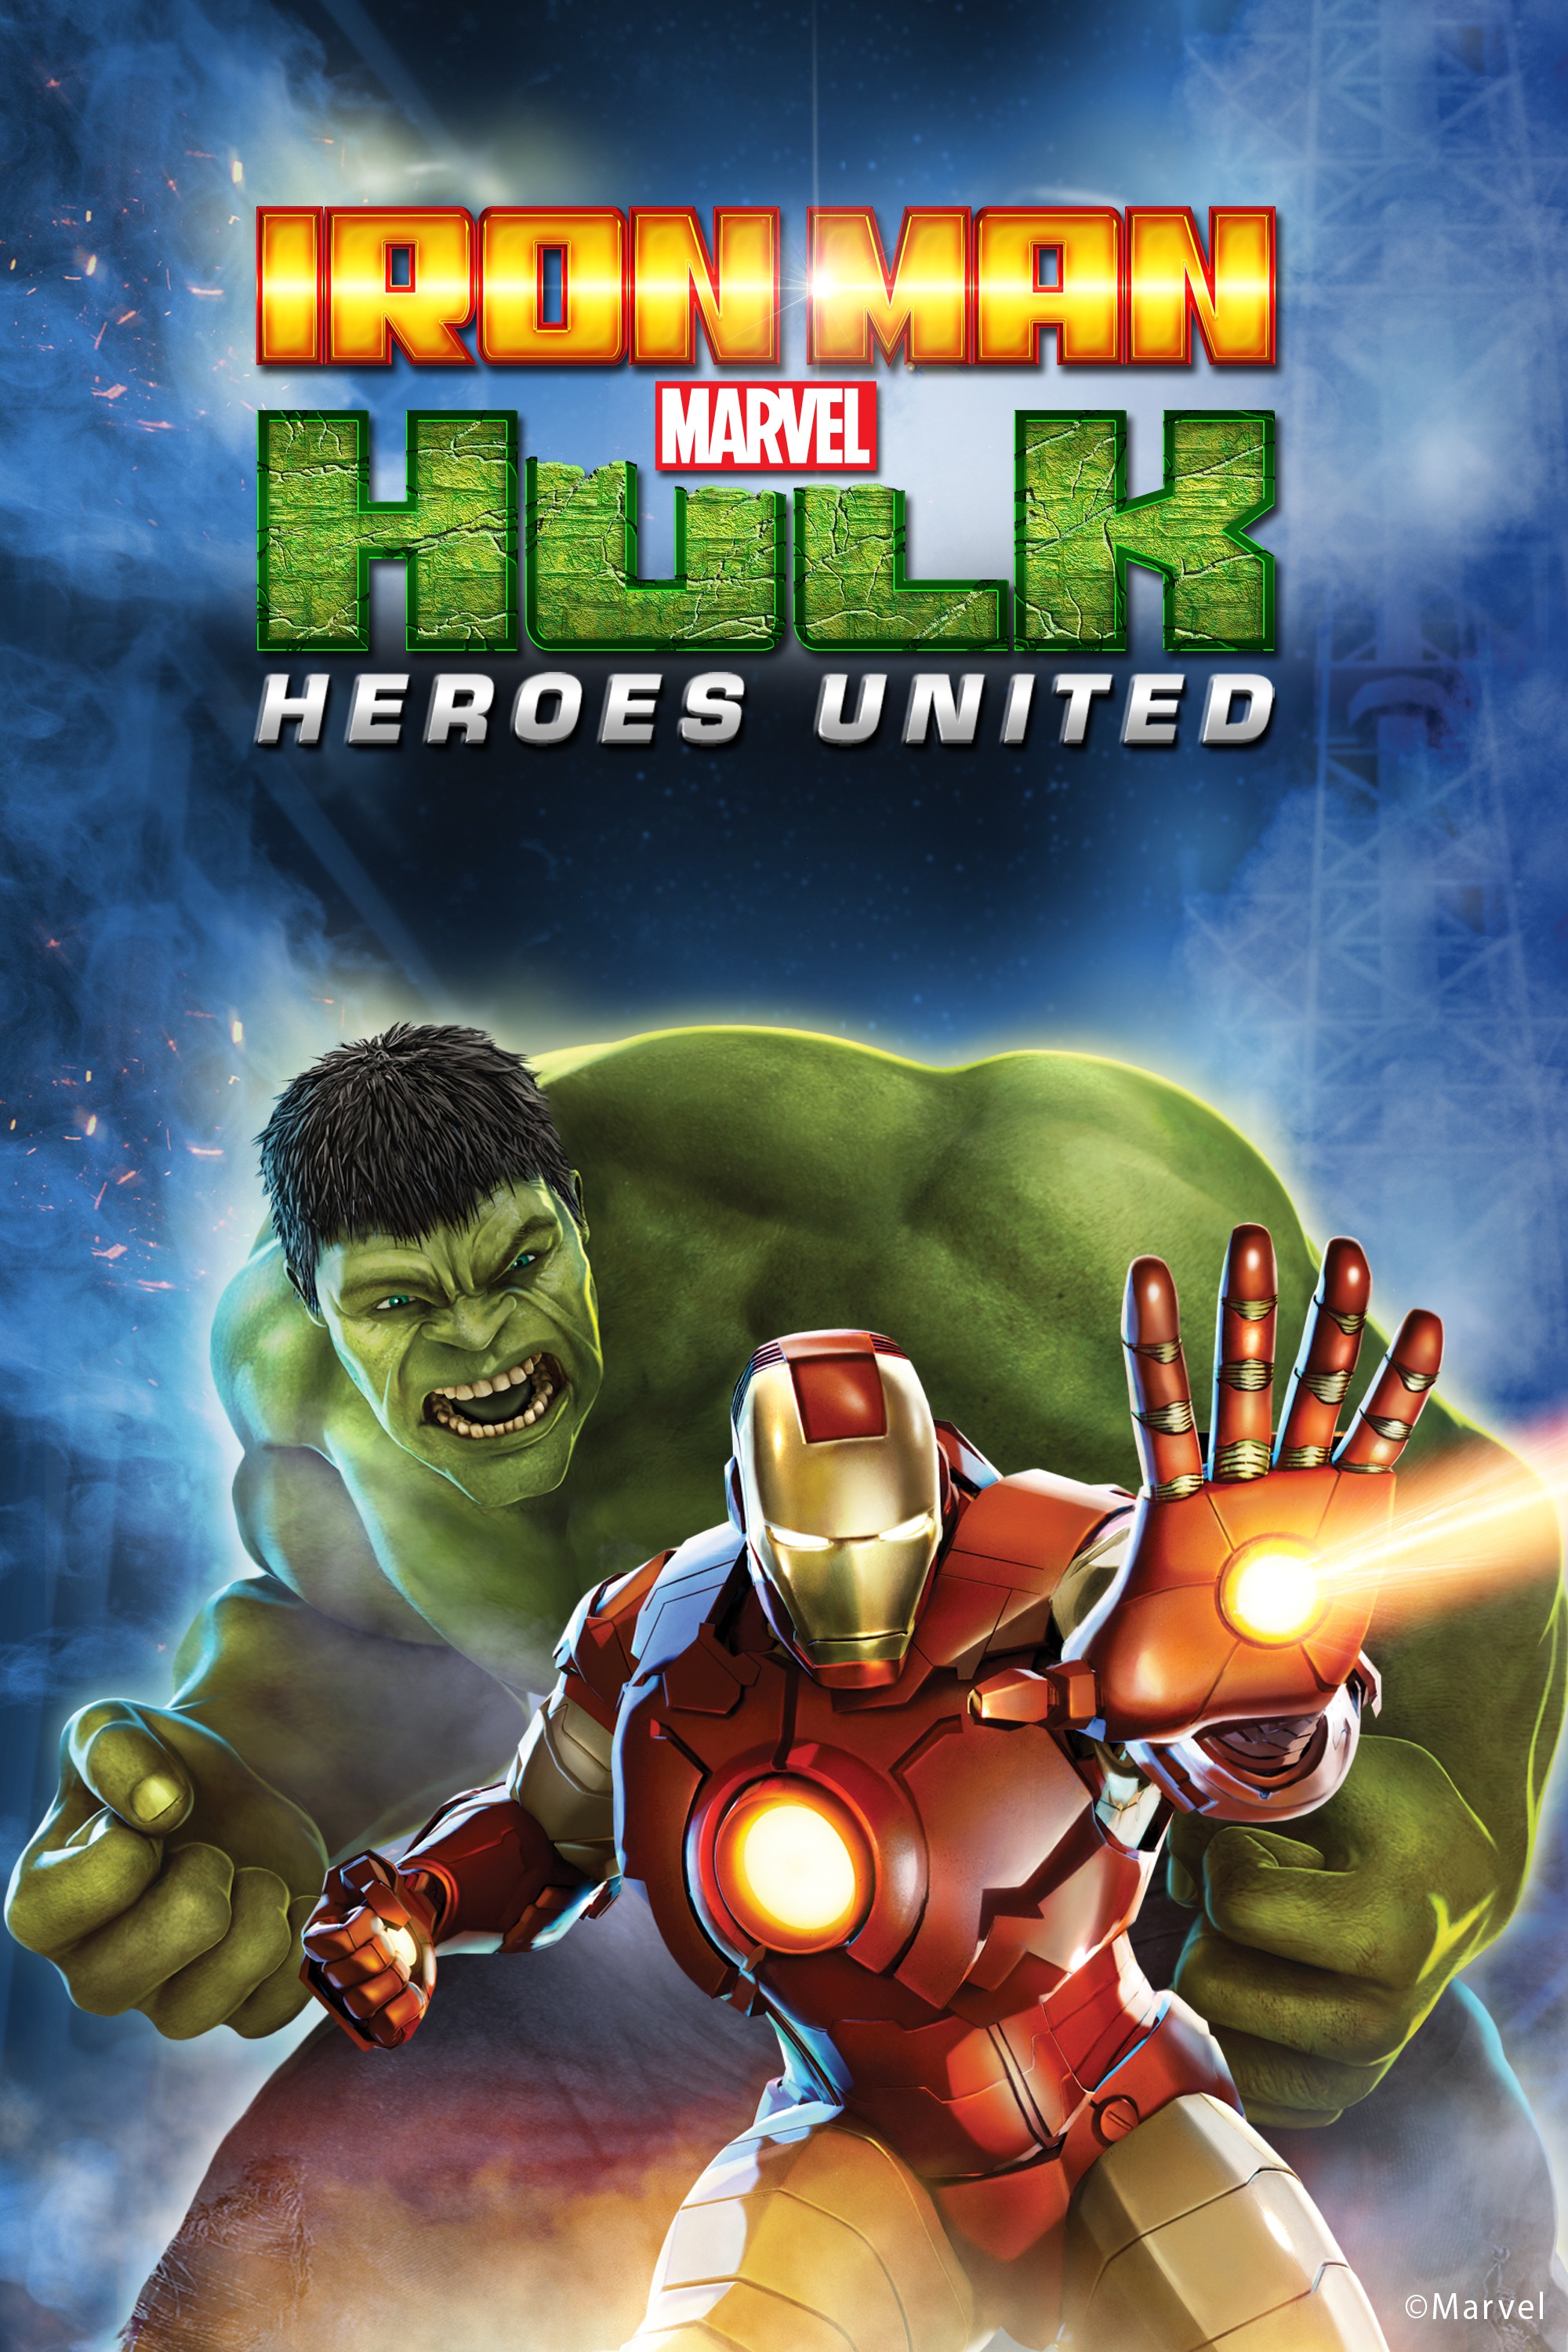 Iron Man & Hulk: Heroes United Backgrounds, Compatible - PC, Mobile, Gadgets| 2000x3000 px